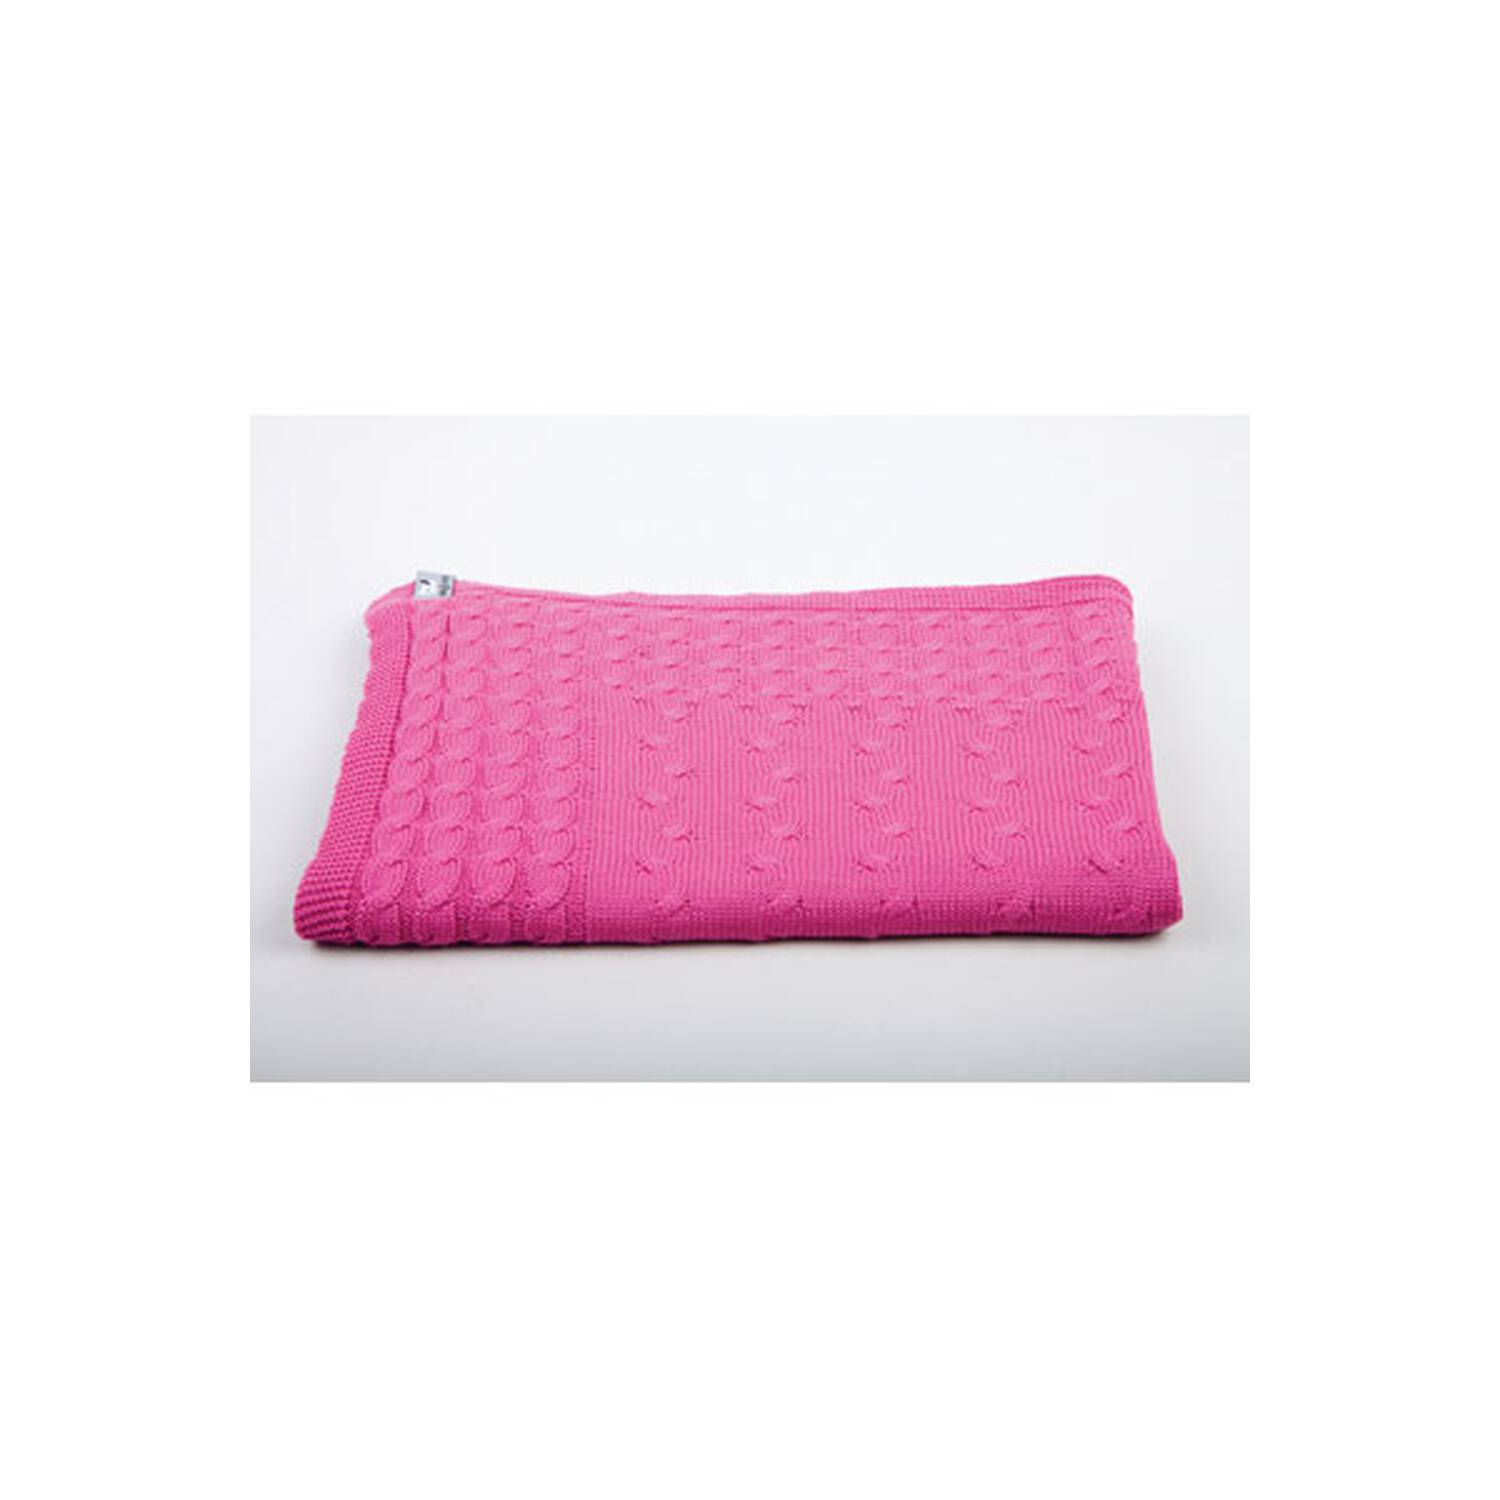 baby 39 s only babydecke gestrickt pink baumwolle. Black Bedroom Furniture Sets. Home Design Ideas